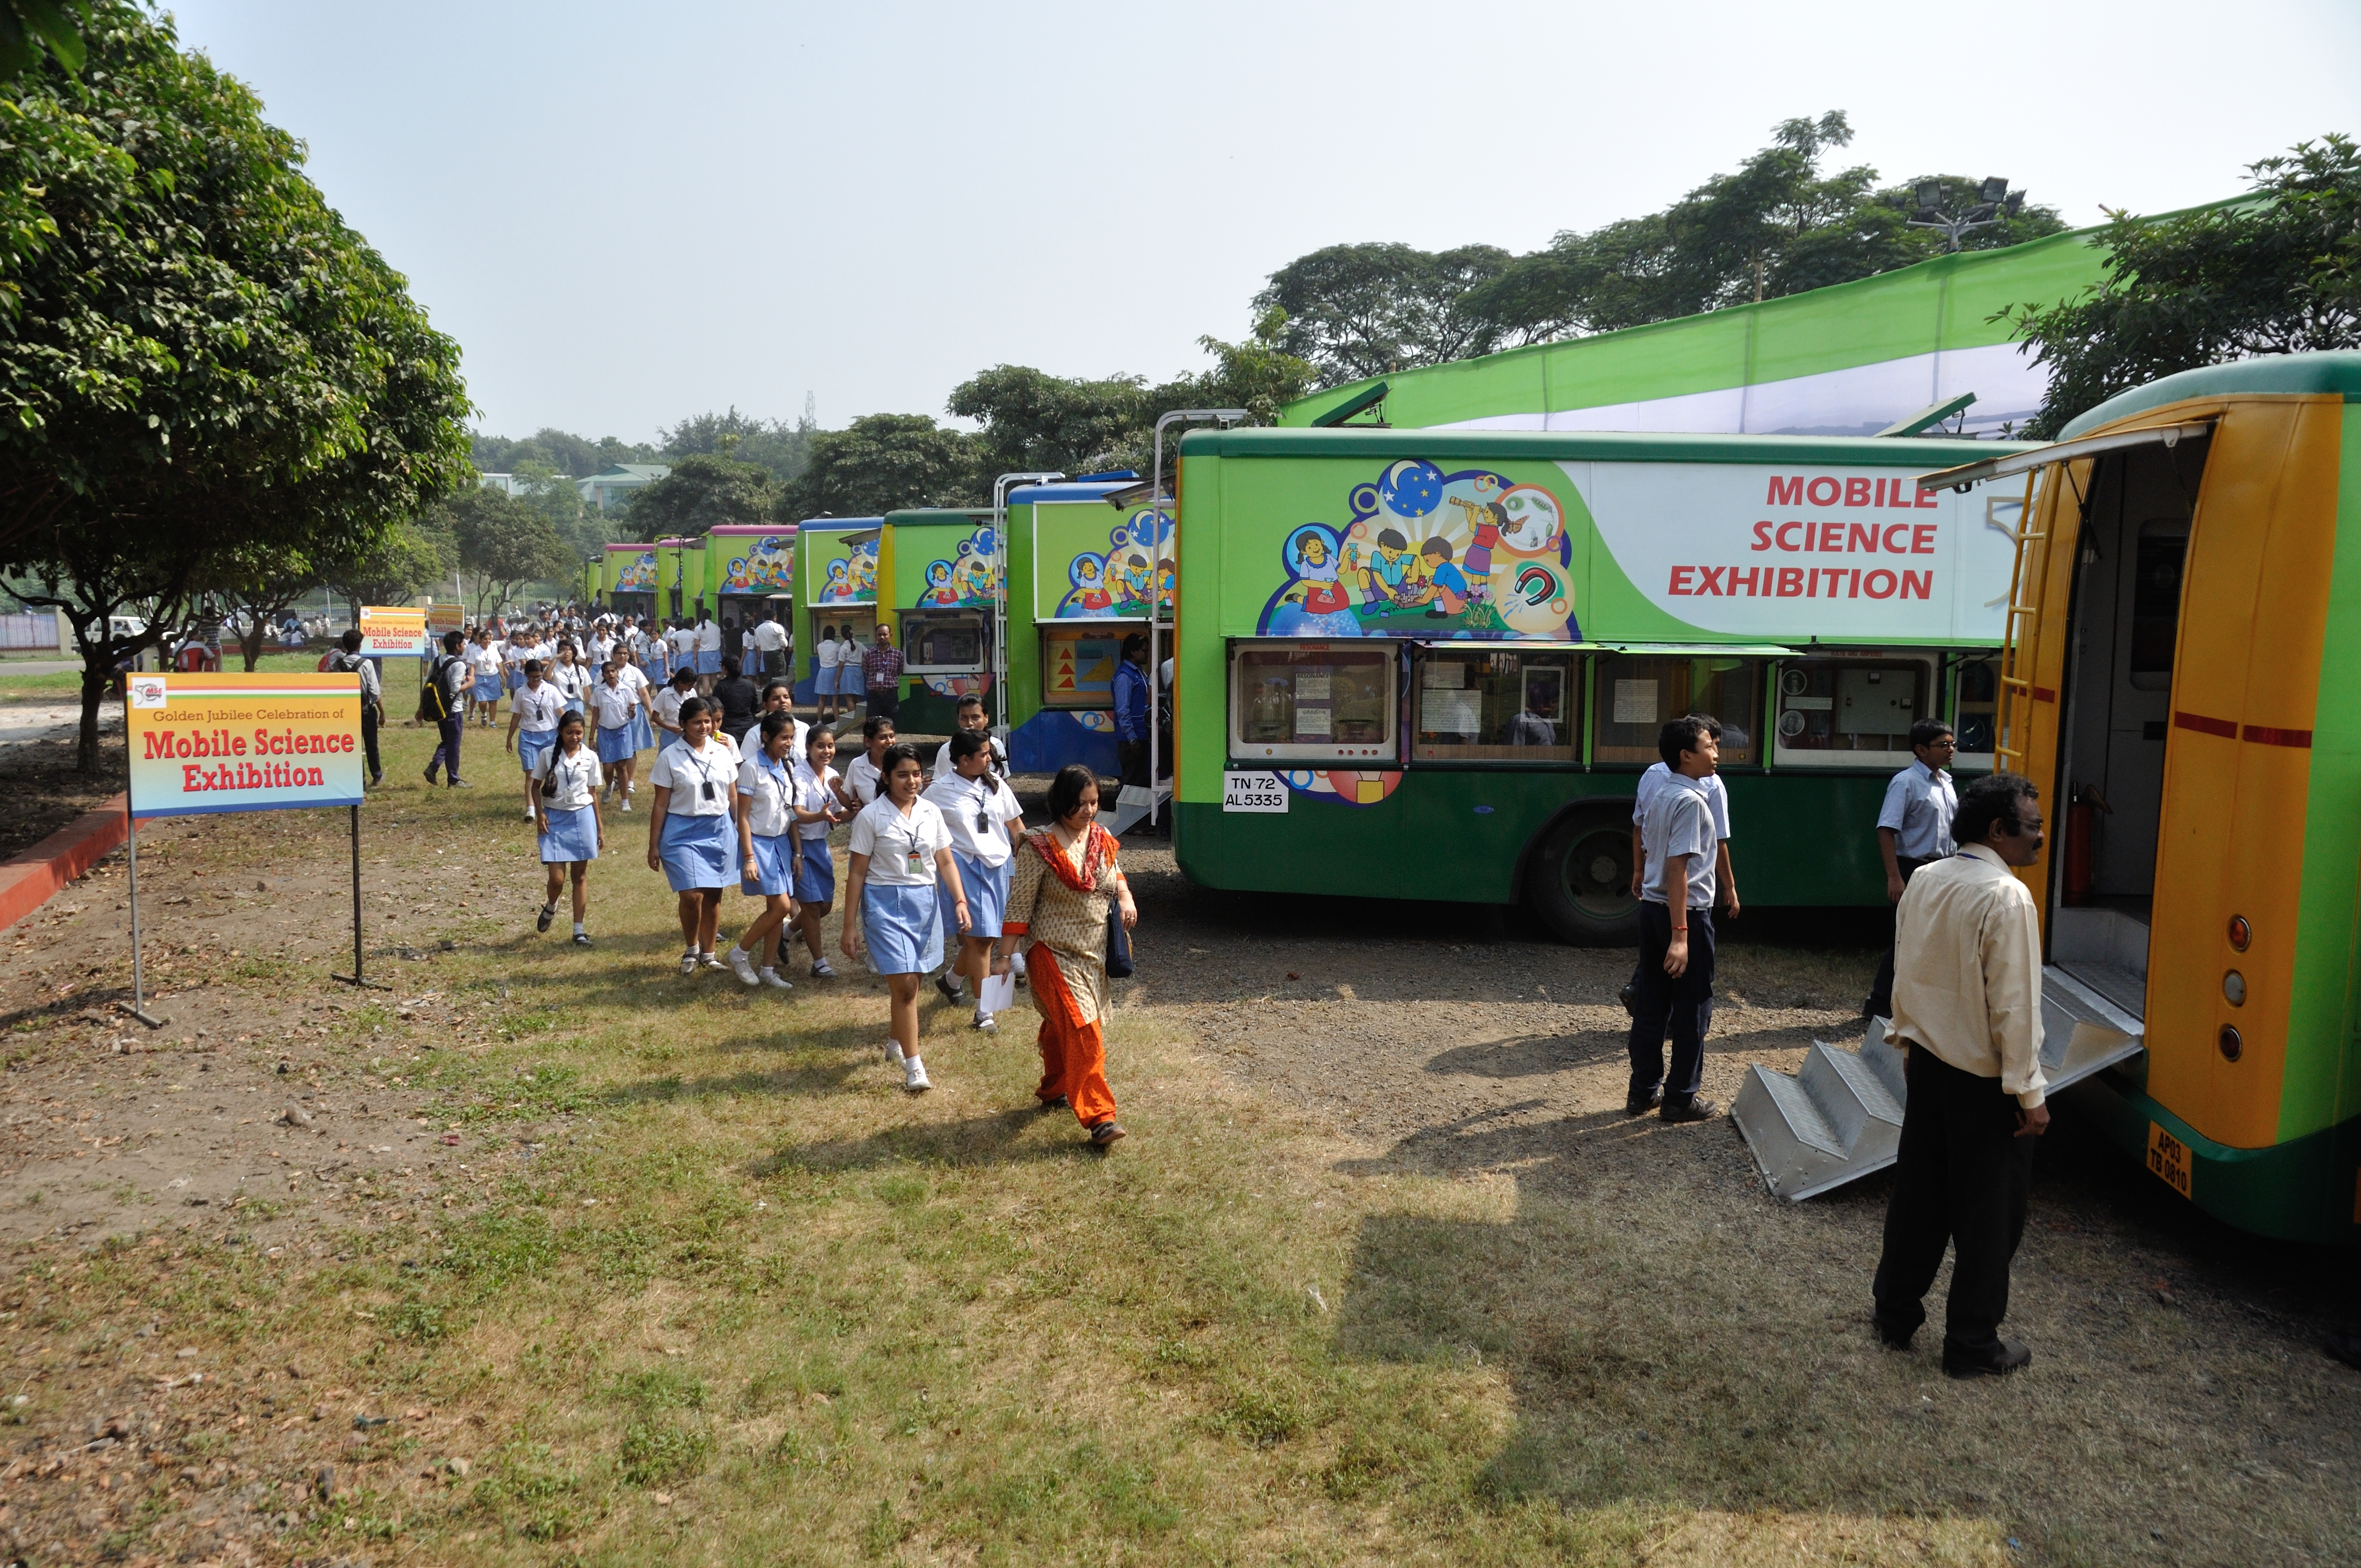 File:Mobile Science Exhibition - MSE Golden Jubilee